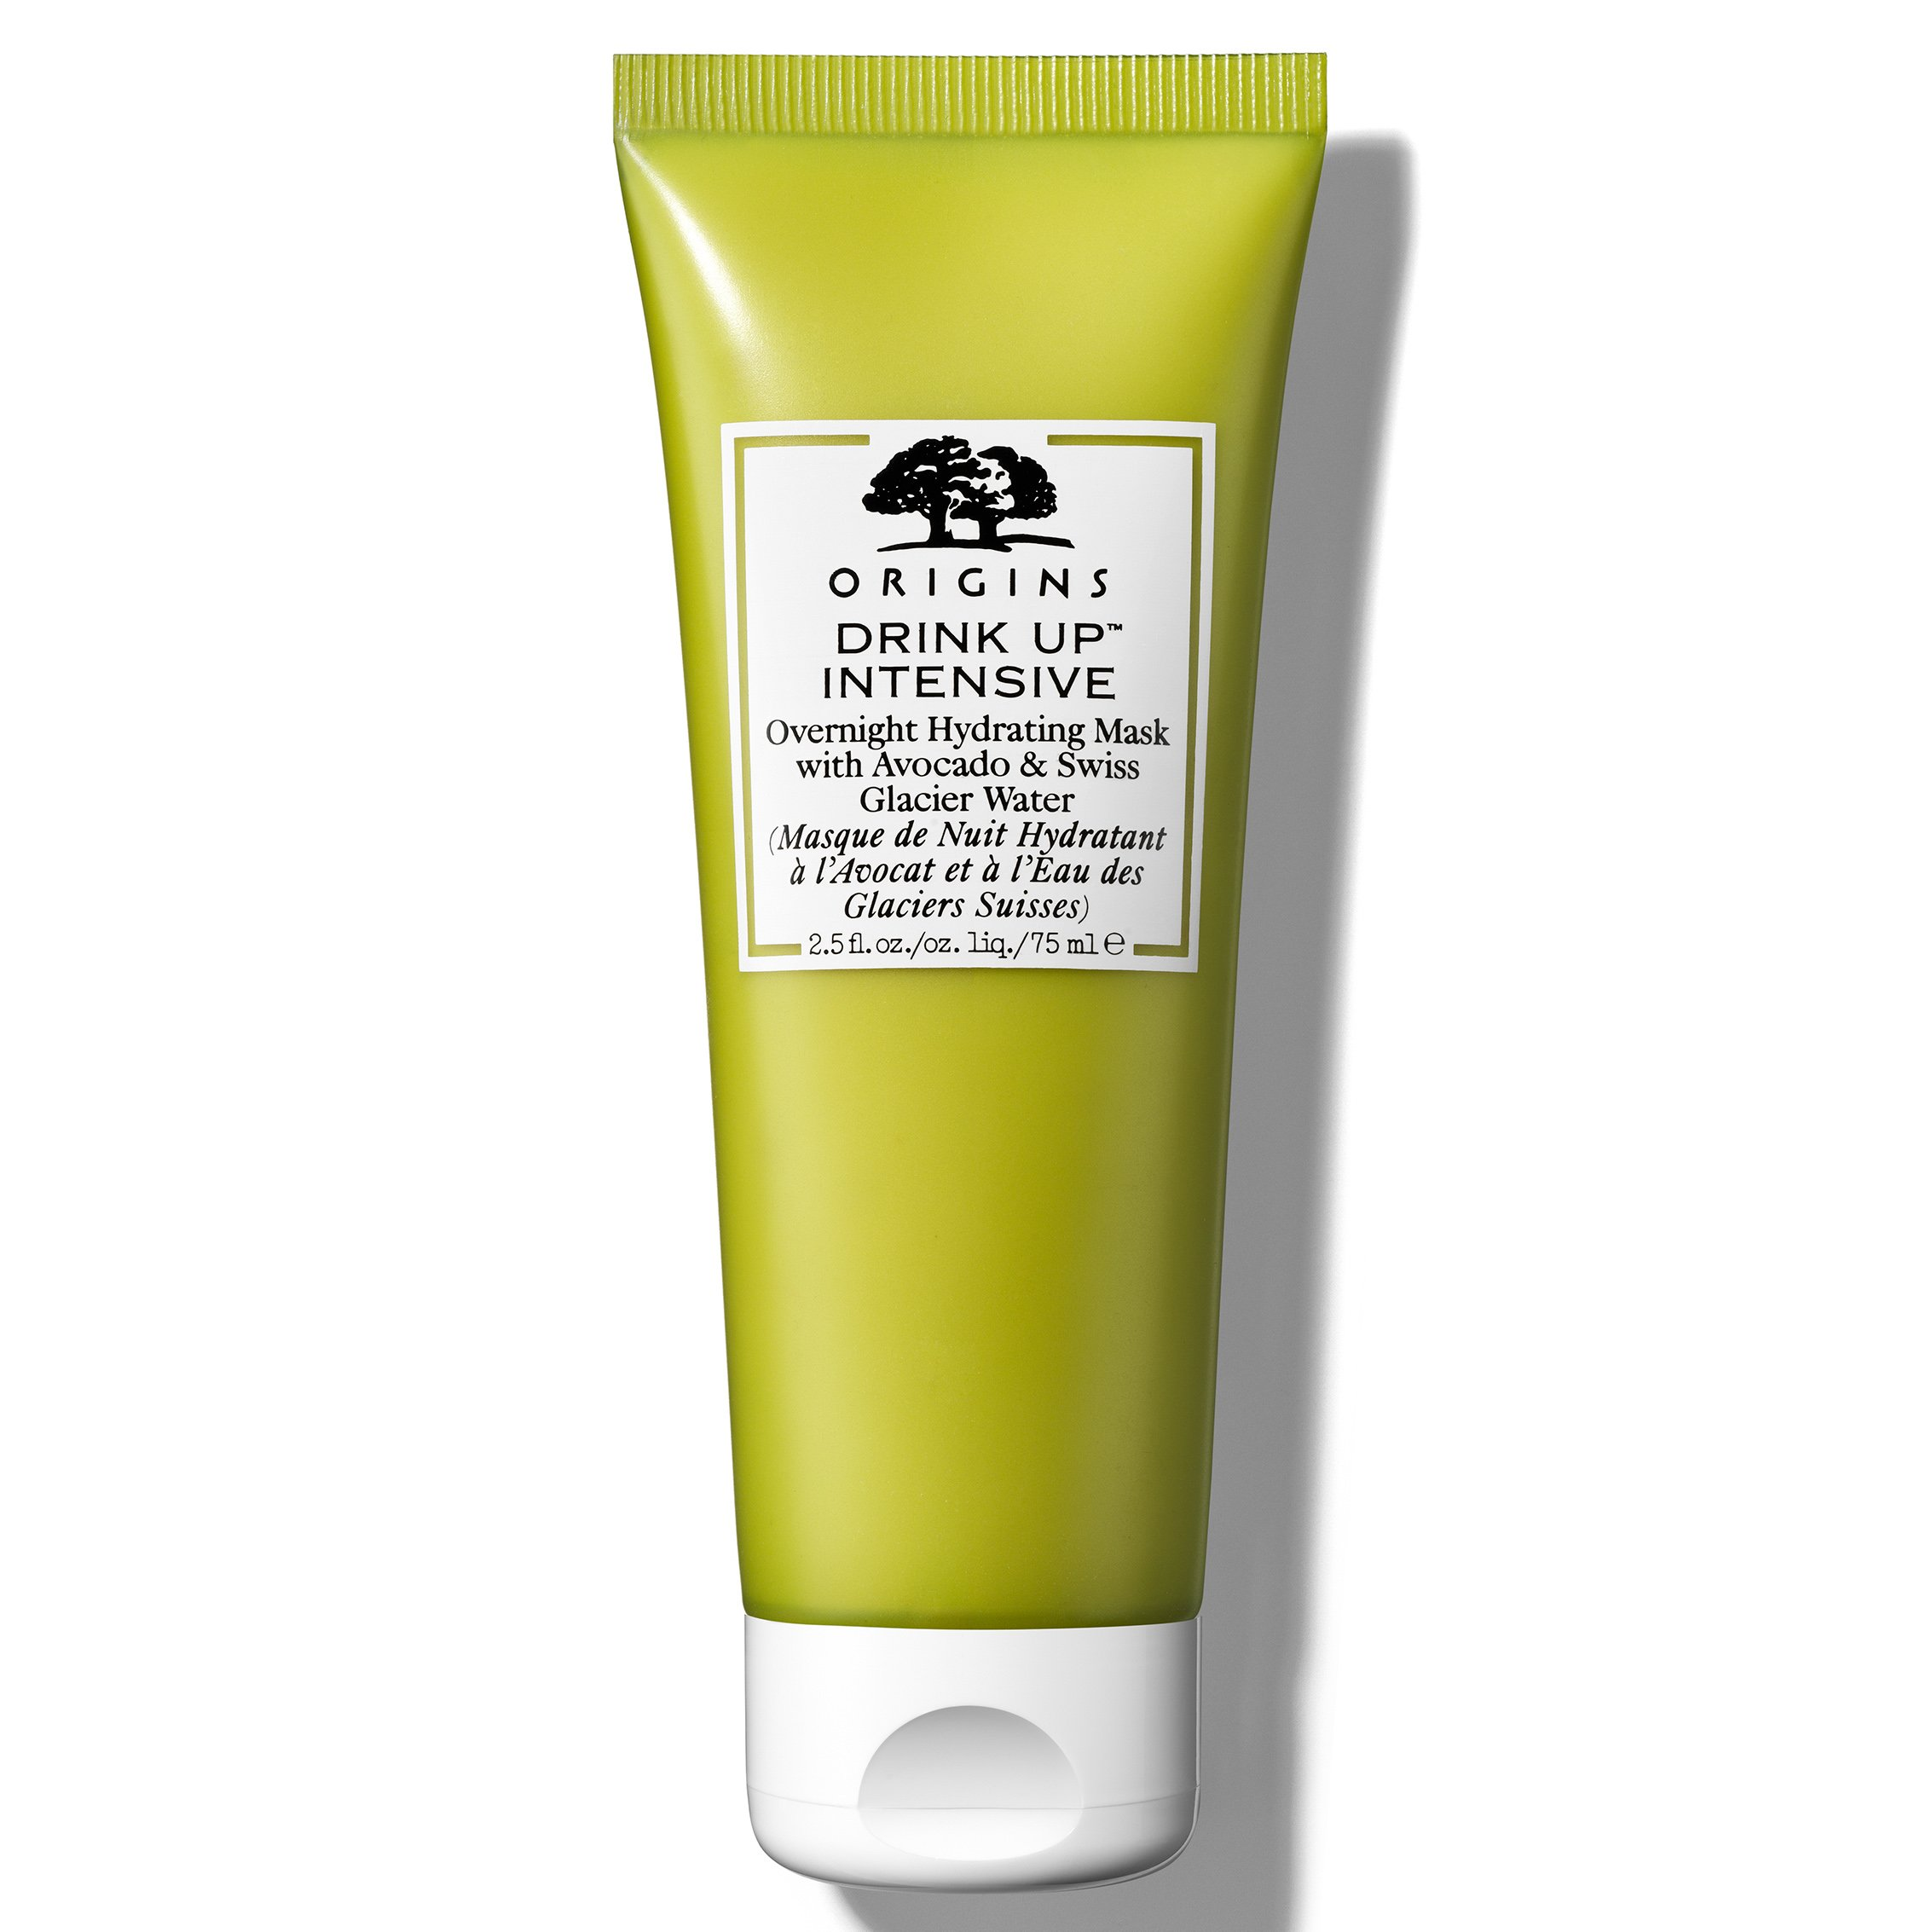 Origins Drink Up Intensive Overnight Hydrating Mask Ενυδατική Μάσκα Νυκτός με Αβοκάντο 75ml